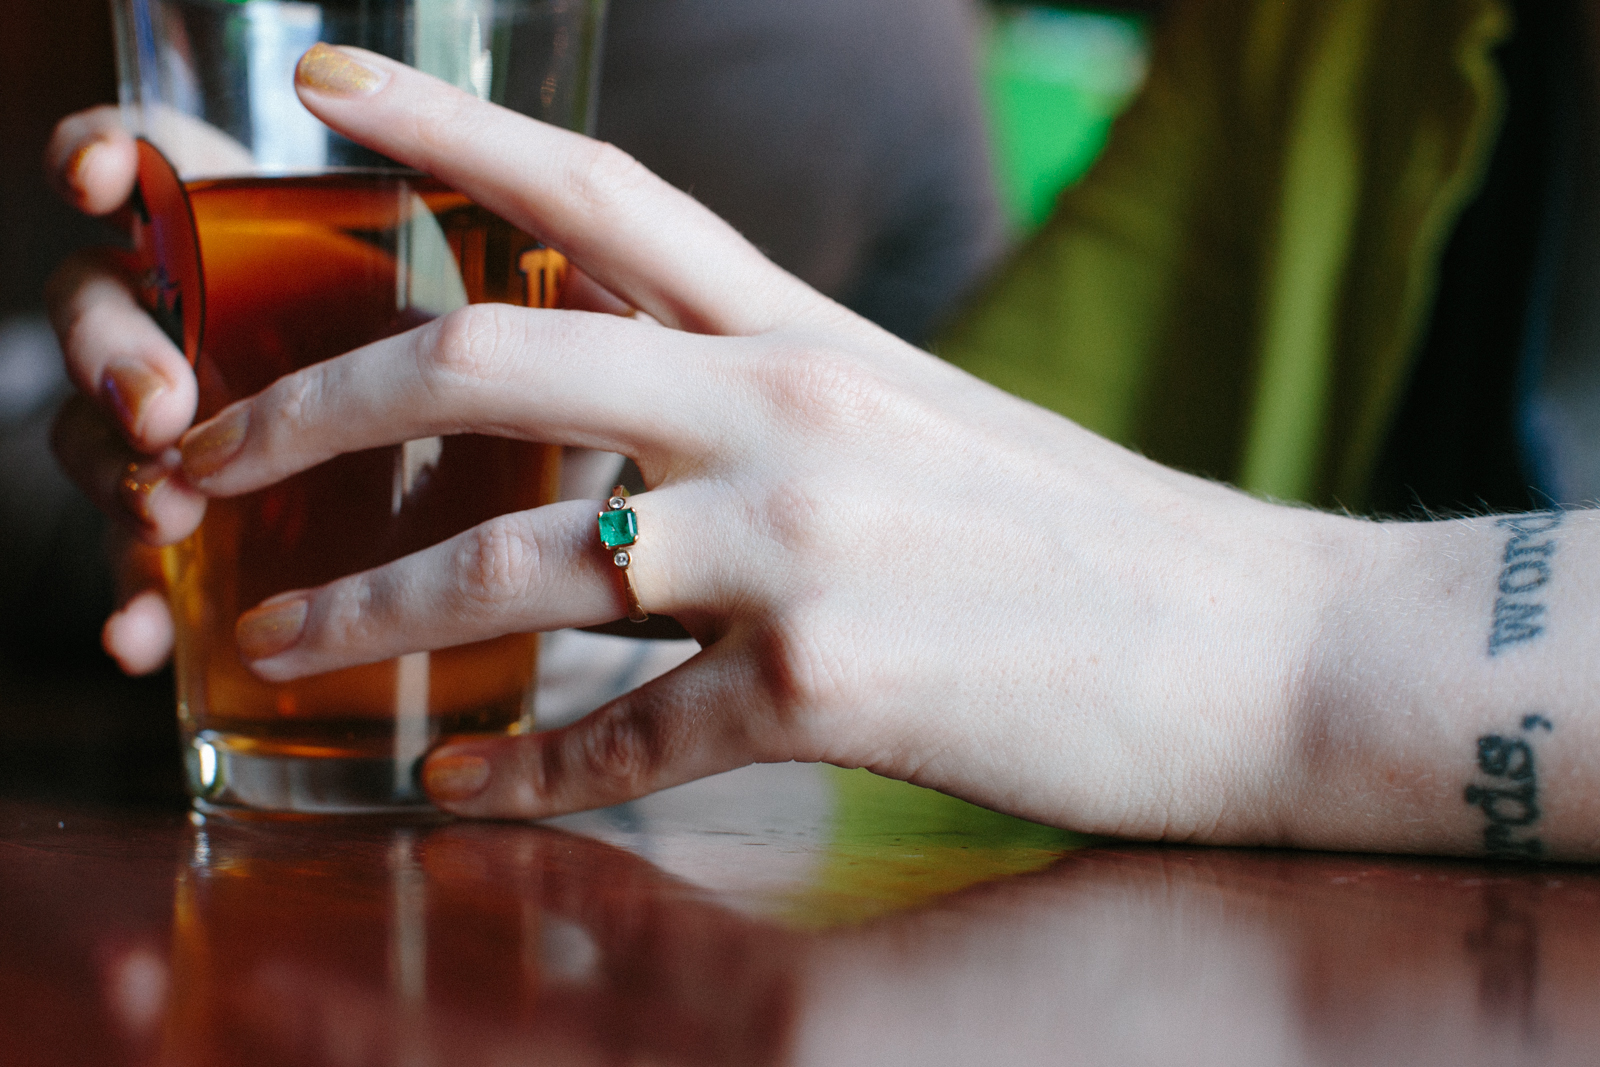 engagement photos in a bar